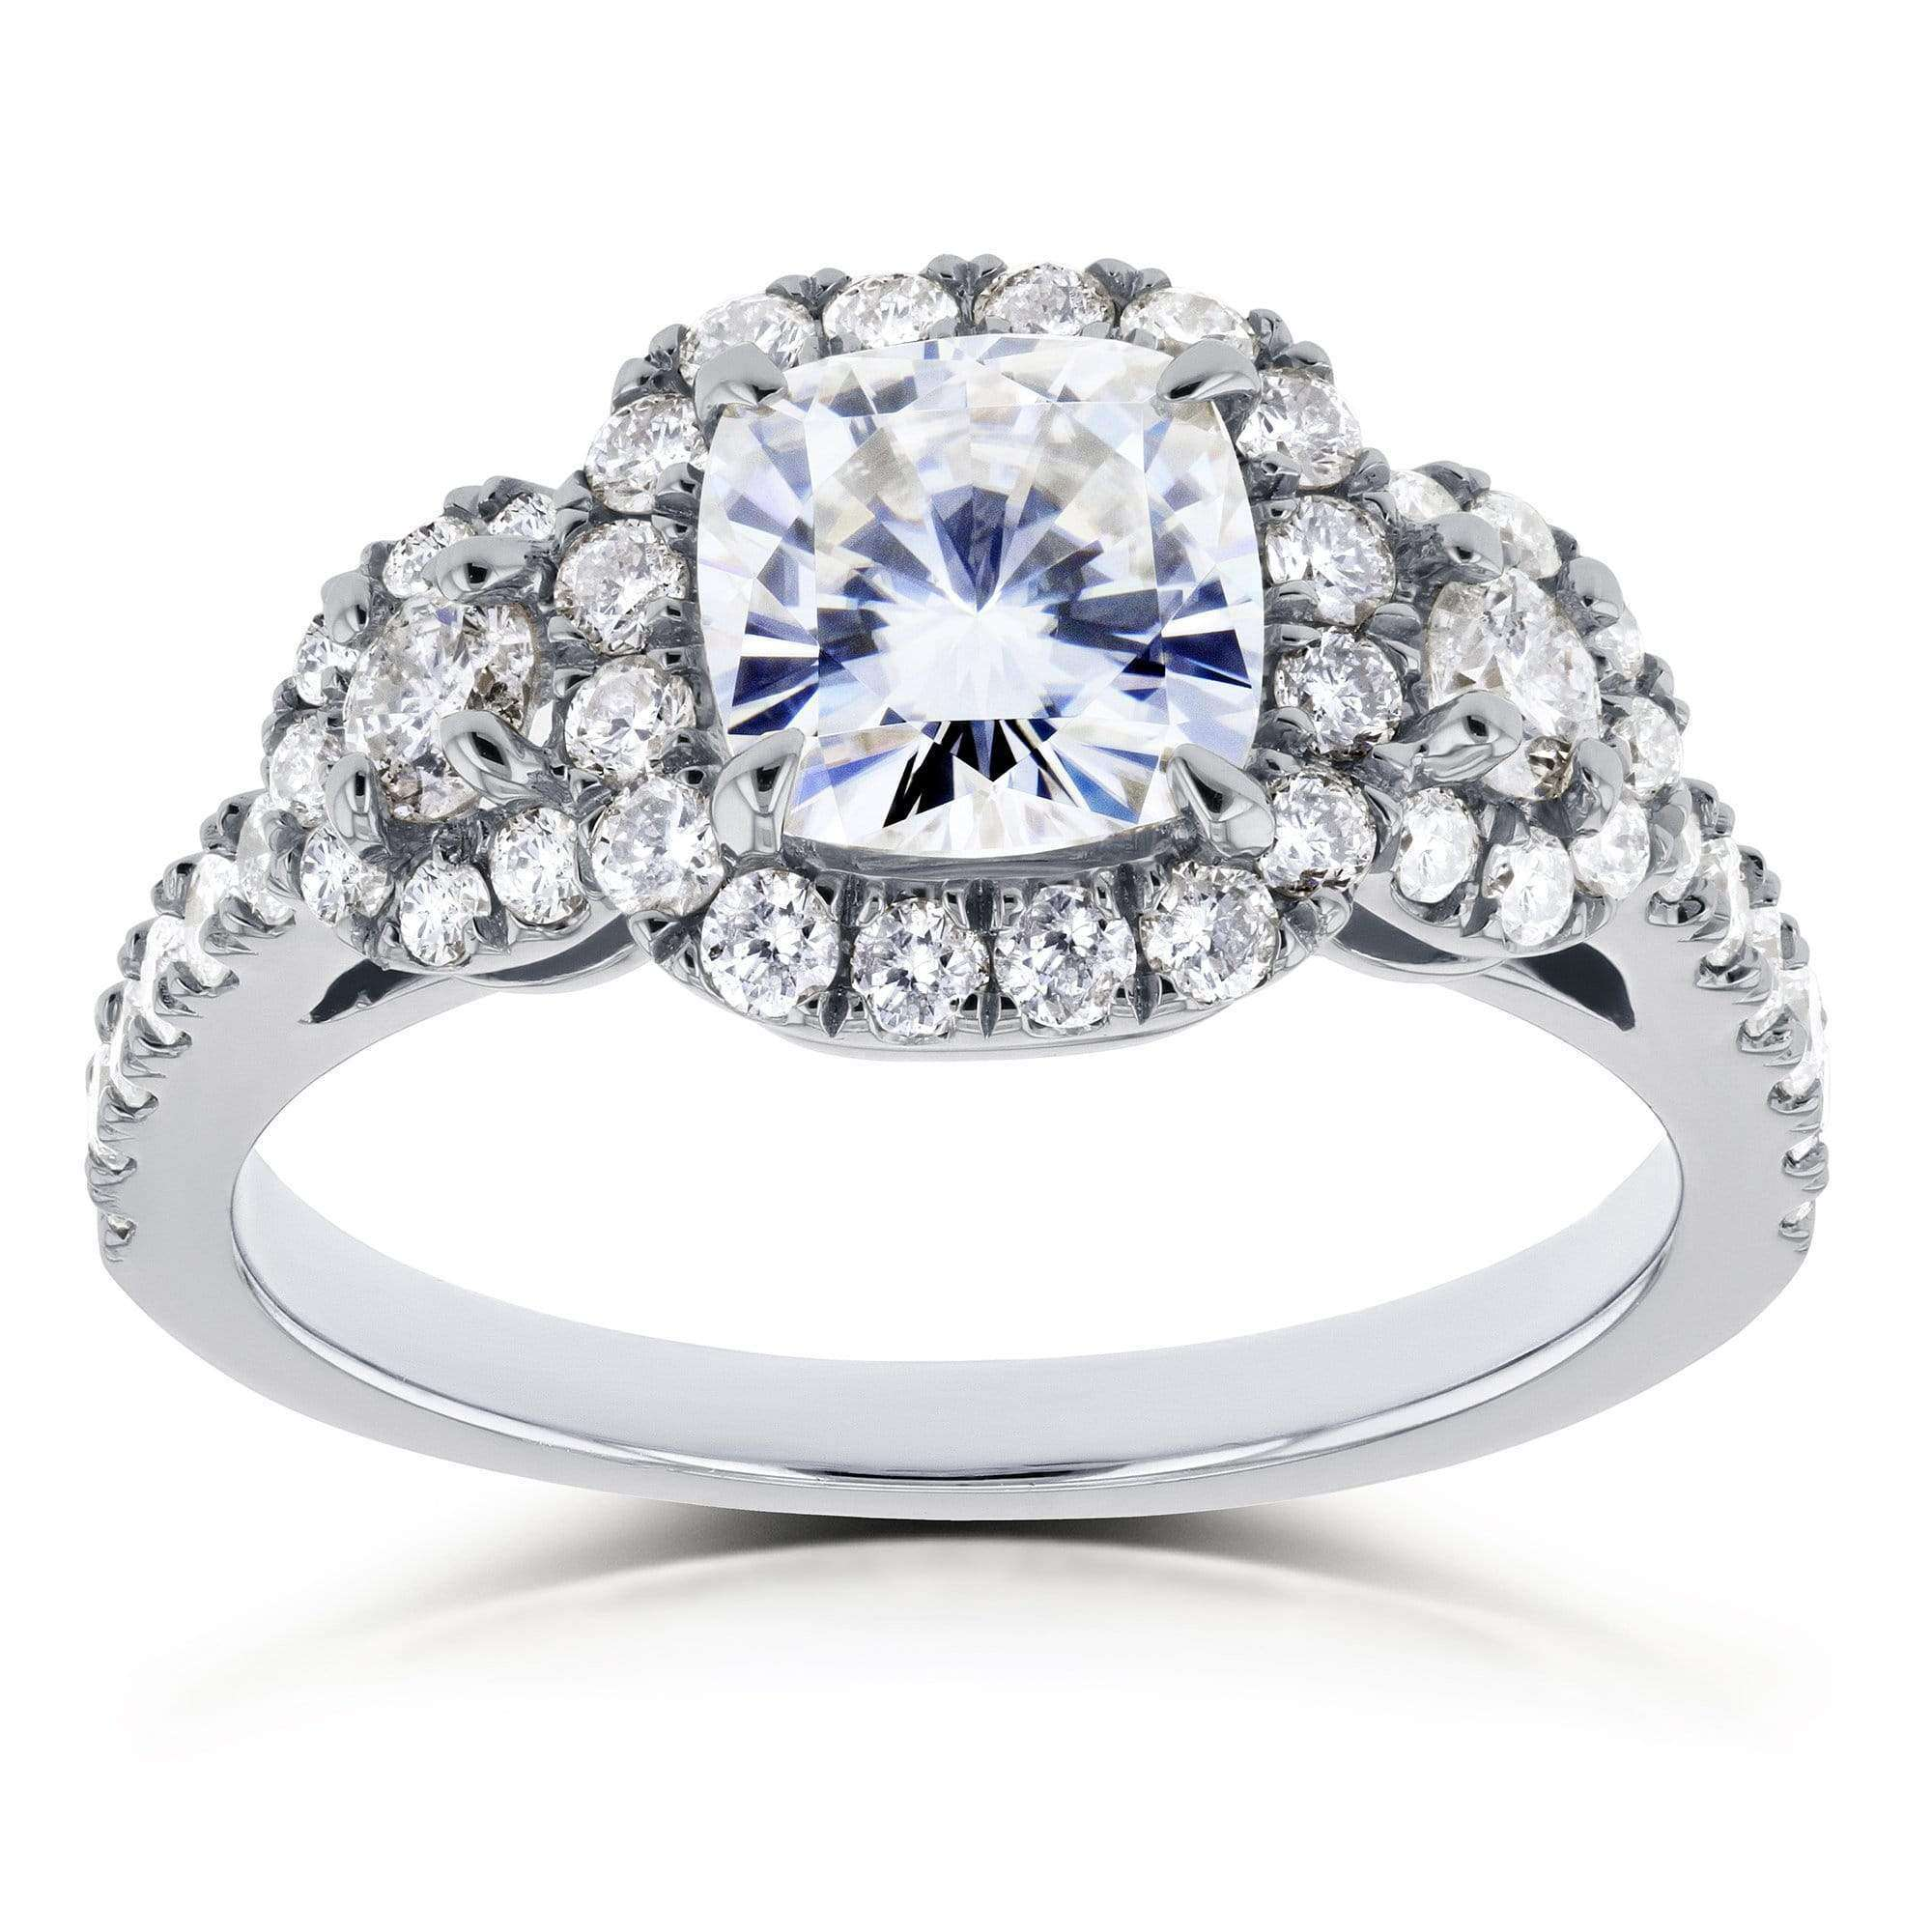 Top Near-Colorless (F-G) Cushion Moissanite and Diamond Engagement Ring 1 7/8 CTW in 14k White Gold - 11